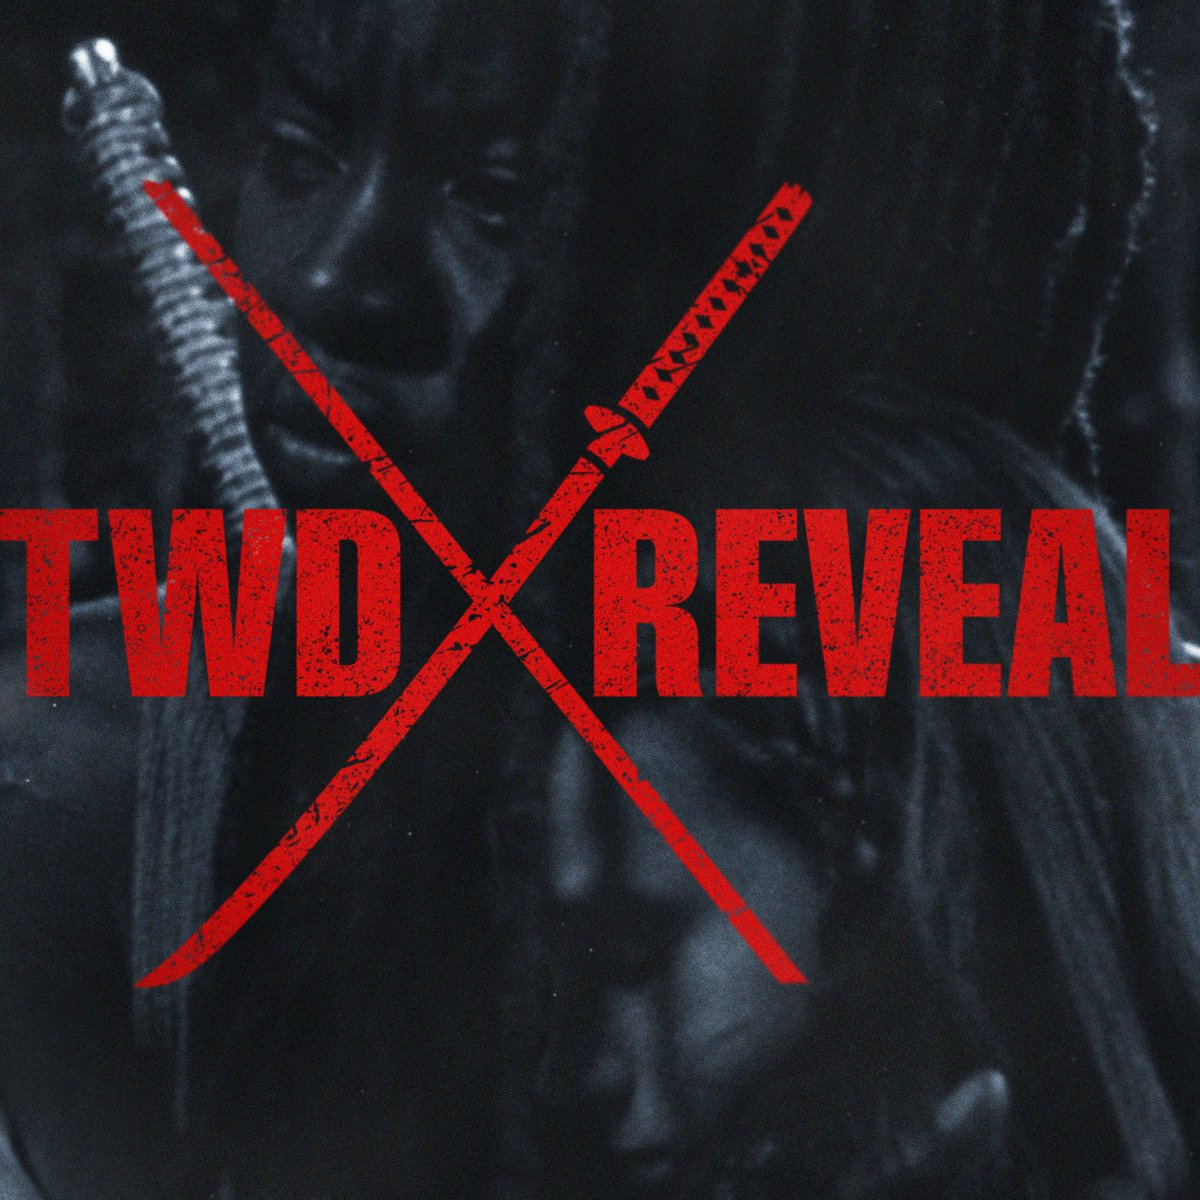 The Walking Dead On Amc On Twitter Twdxreveals A New